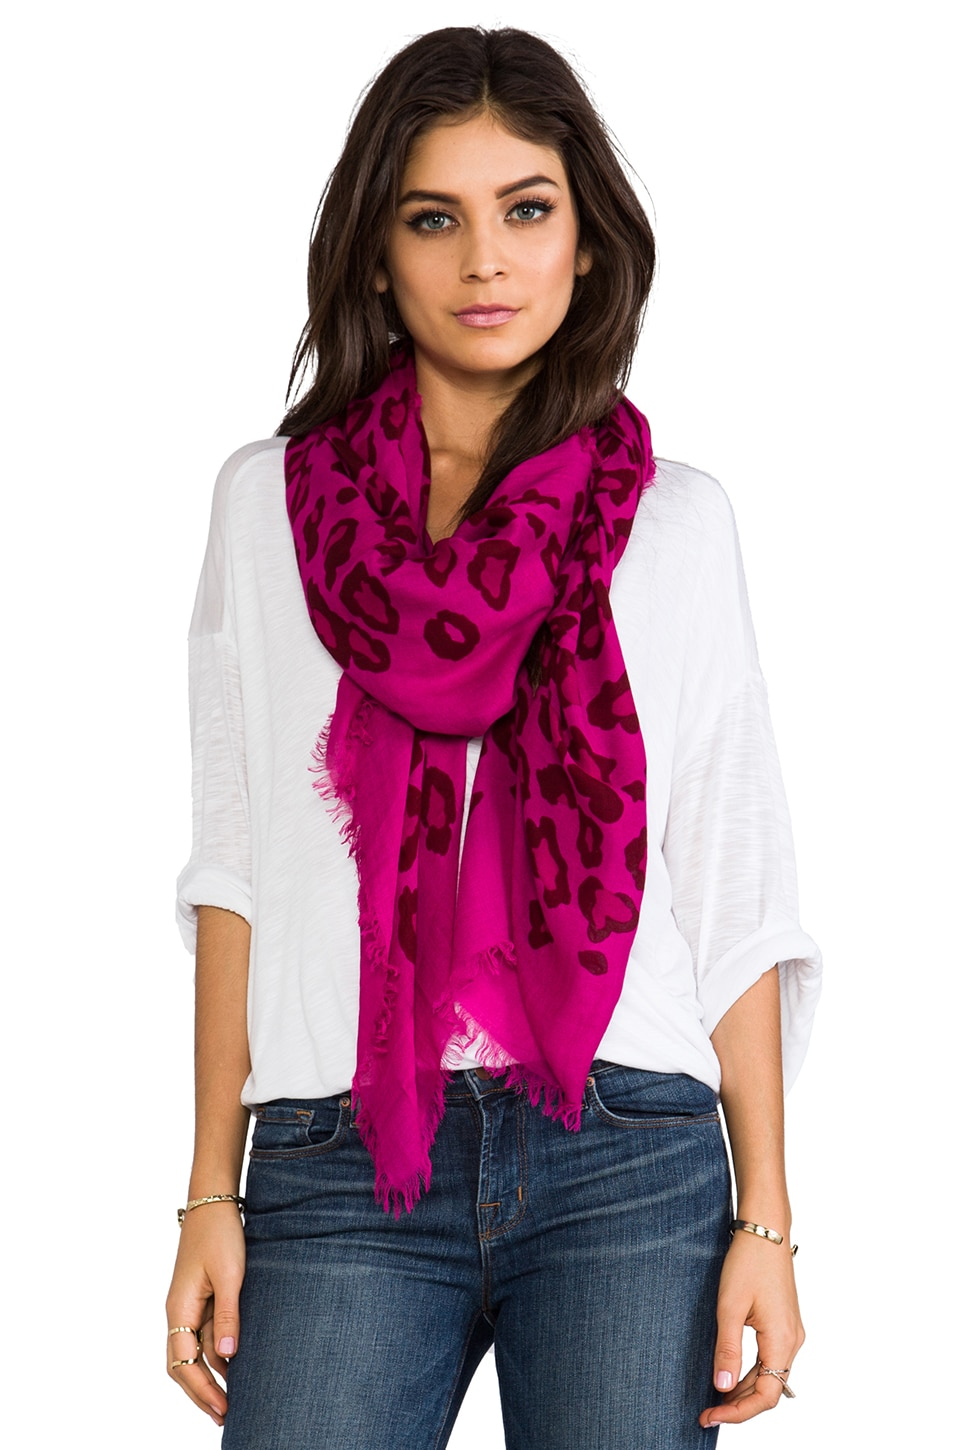 Marc by Marc Jacobs Sasha Leopard Scarf in Pop Pink Multi